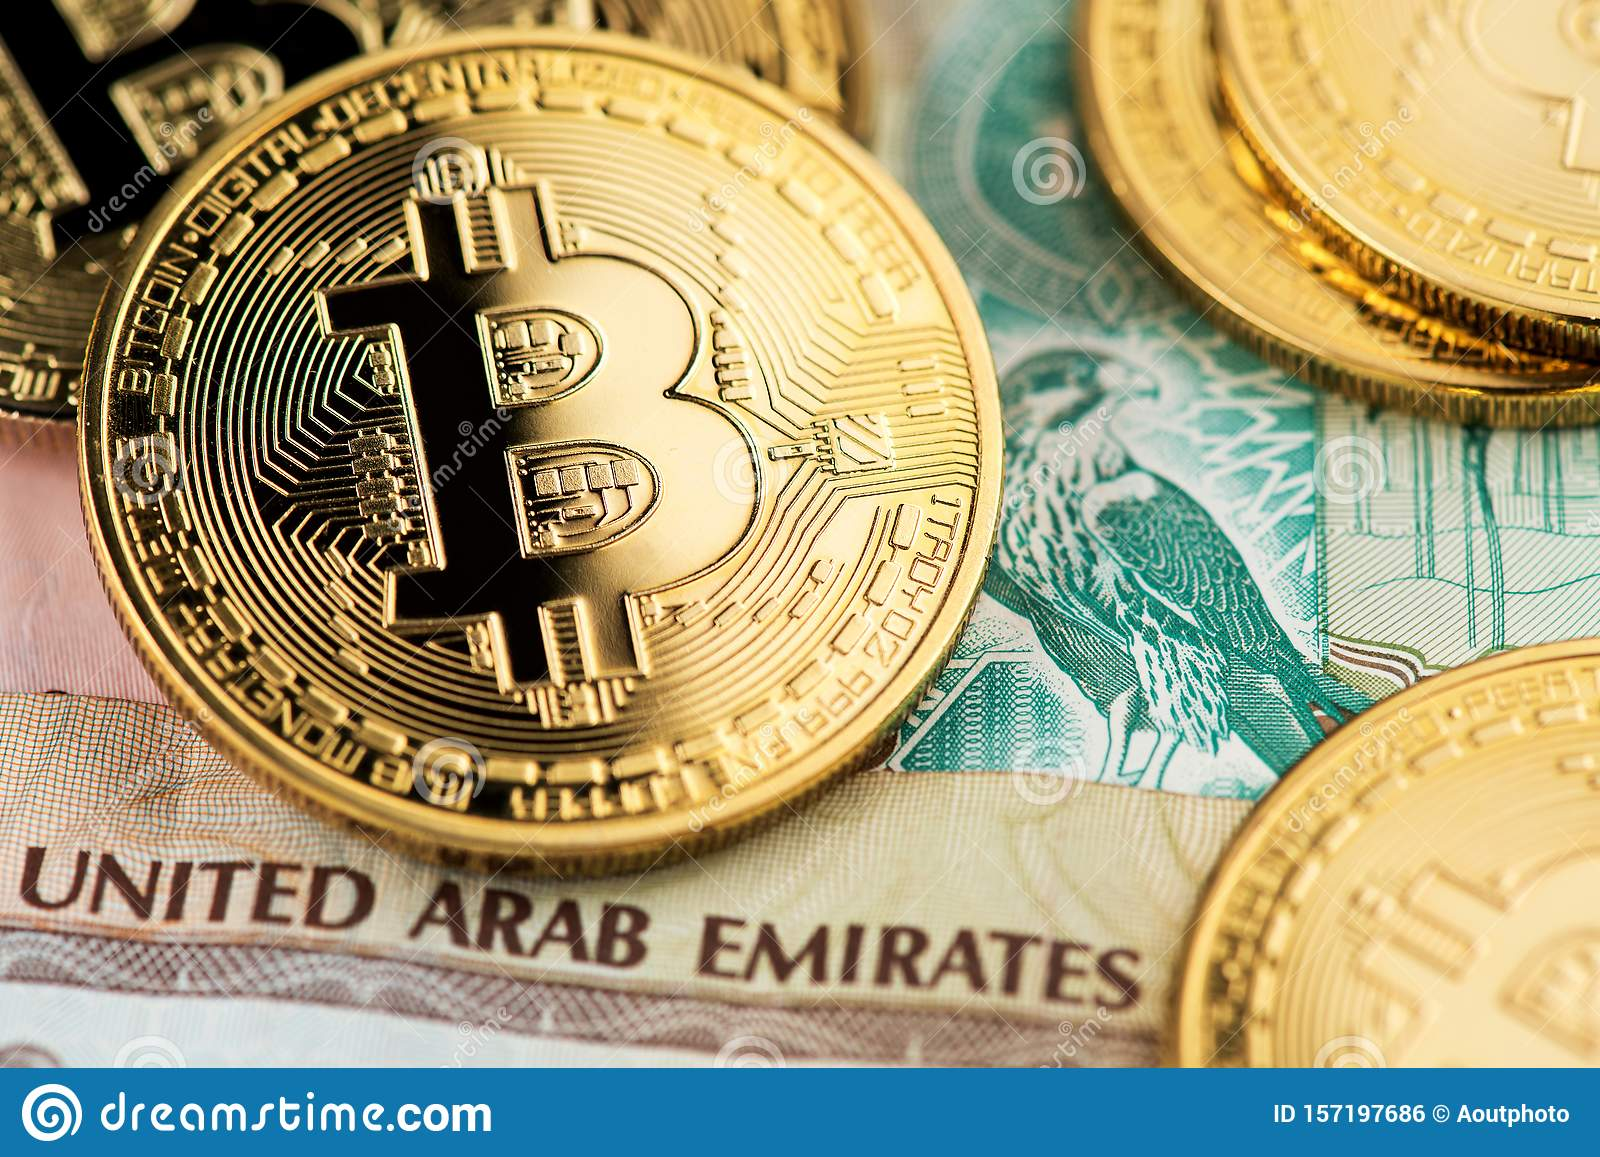 buy cryptocurrency in united arab emirates